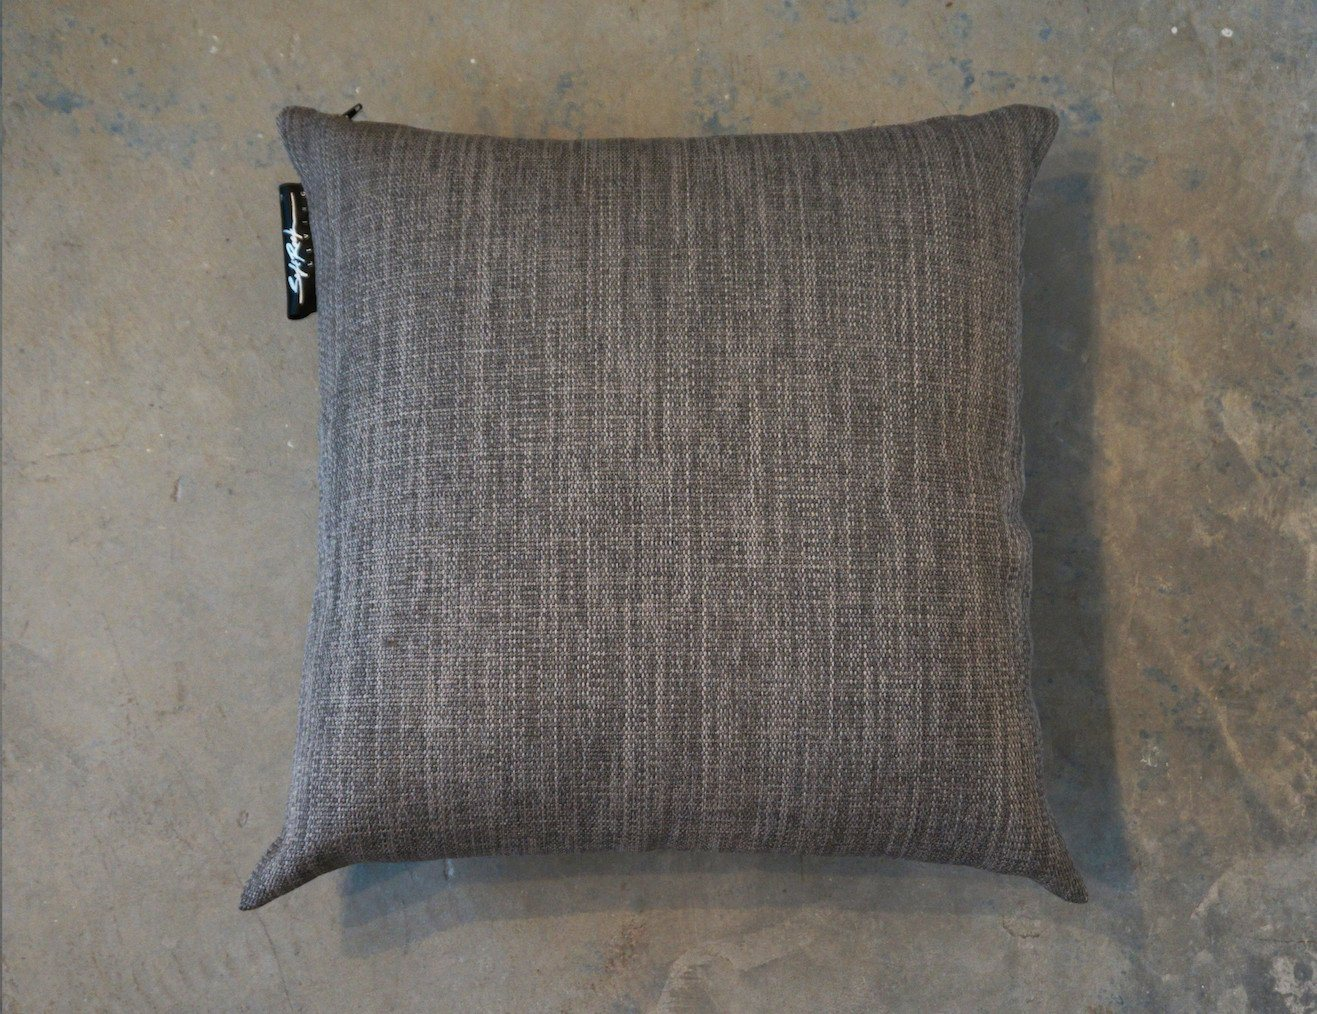 Granite Pillow(Pre-Order) - Cushions - SoftRock Living - Naiise